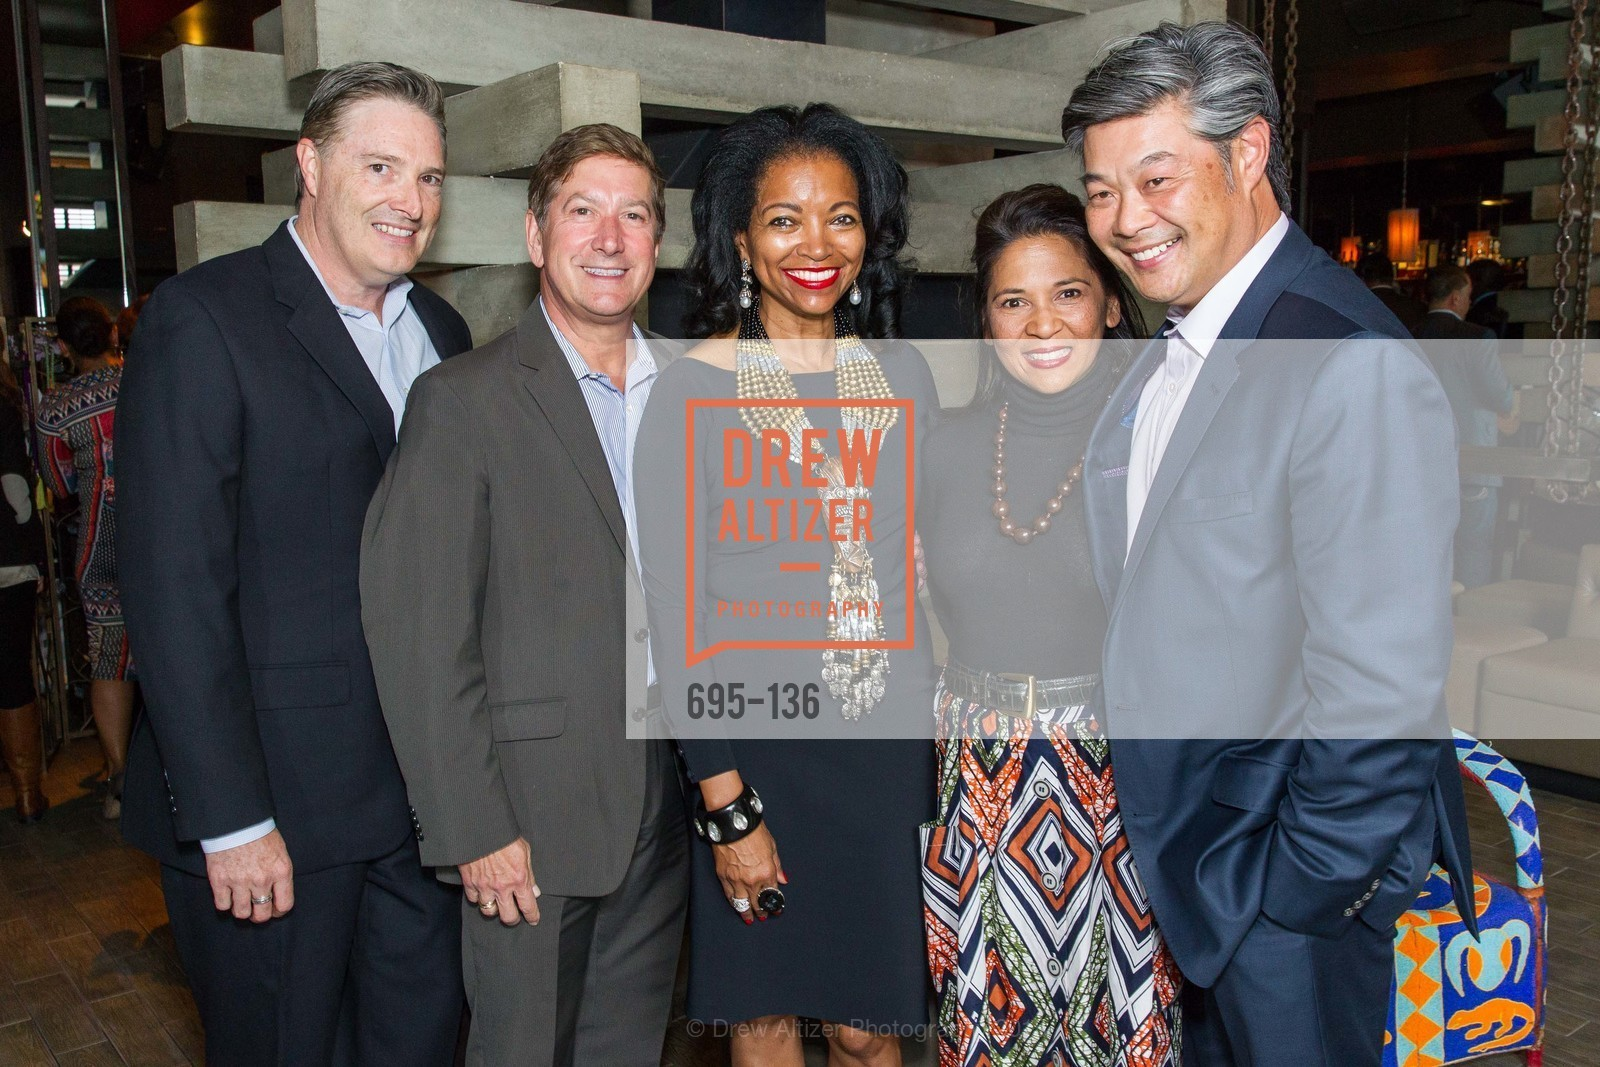 David Jones, Joe D'Alessandro, Denise Bradley Tyson, Darlene Fong, Rodney Fong,  Inspired Luxe Launch Party hosted by Denise Bradley-Tyson, MatrixFillmore, May 27th, 2015,Drew Altizer, Drew Altizer Photography, full-service agency, private events, San Francisco photographer, photographer california